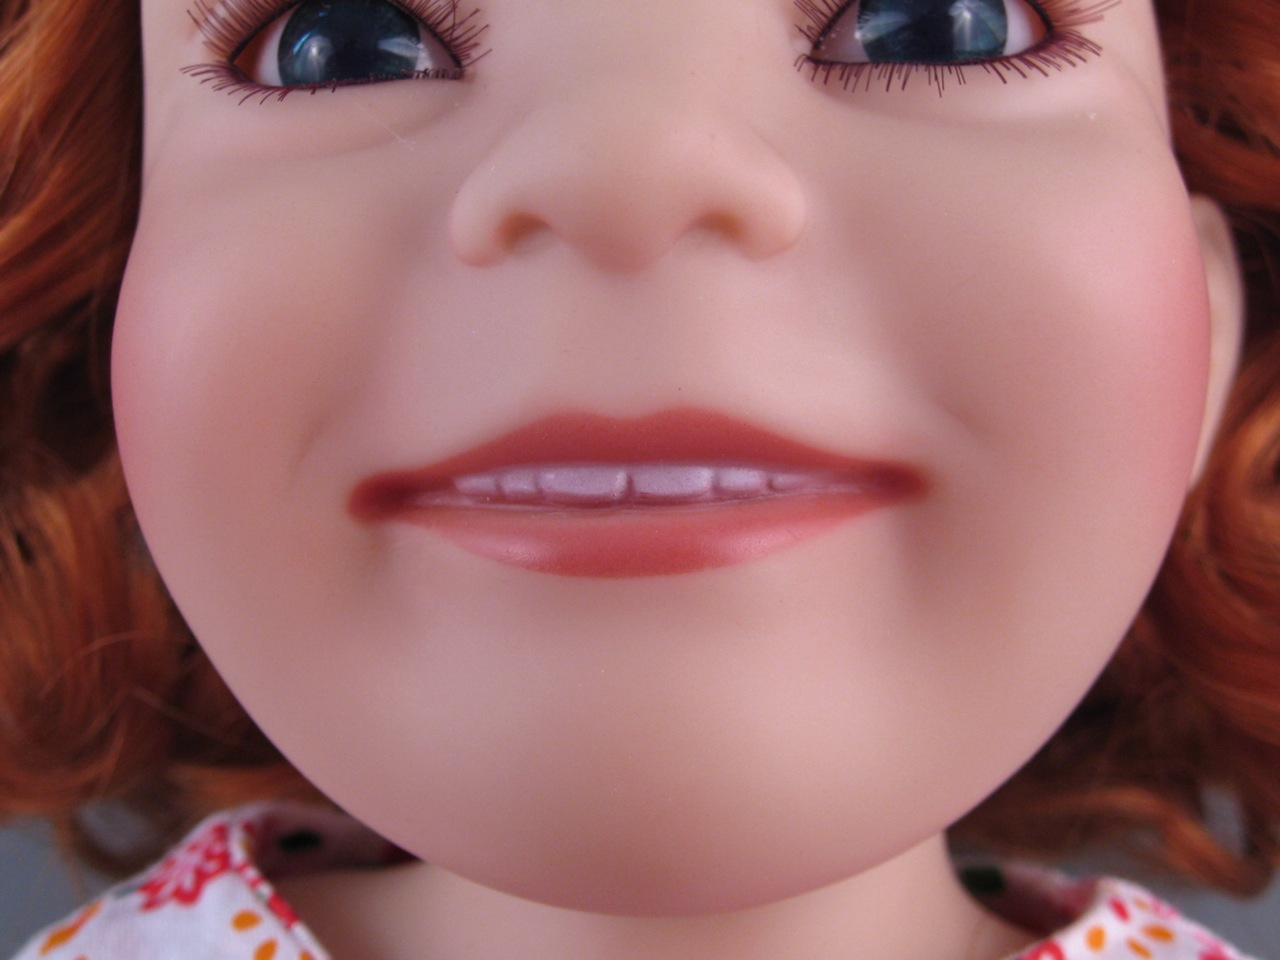 9d2d4896ff0 It's risky to make a smiling doll with visible teeth, but I think Grace  pulls it off. Her teeth are appropriately sized, in scale with her face, ...